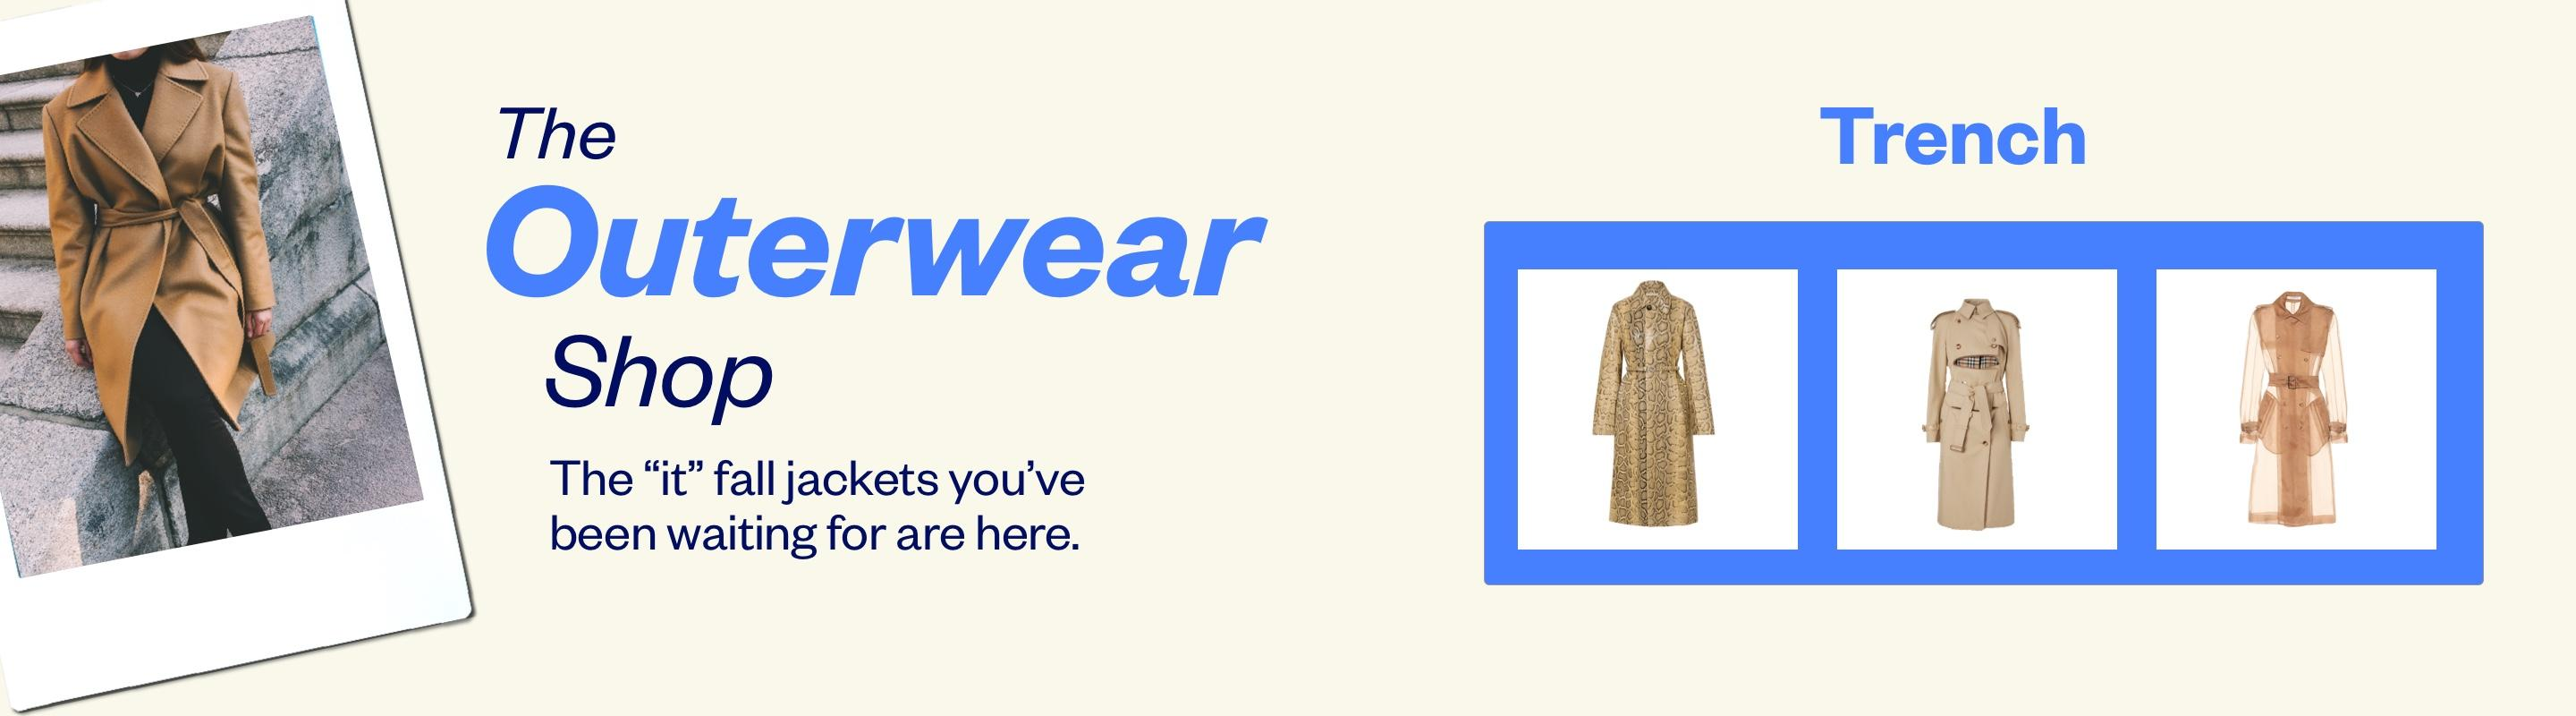 The Outerwear Shop: Trench Coat